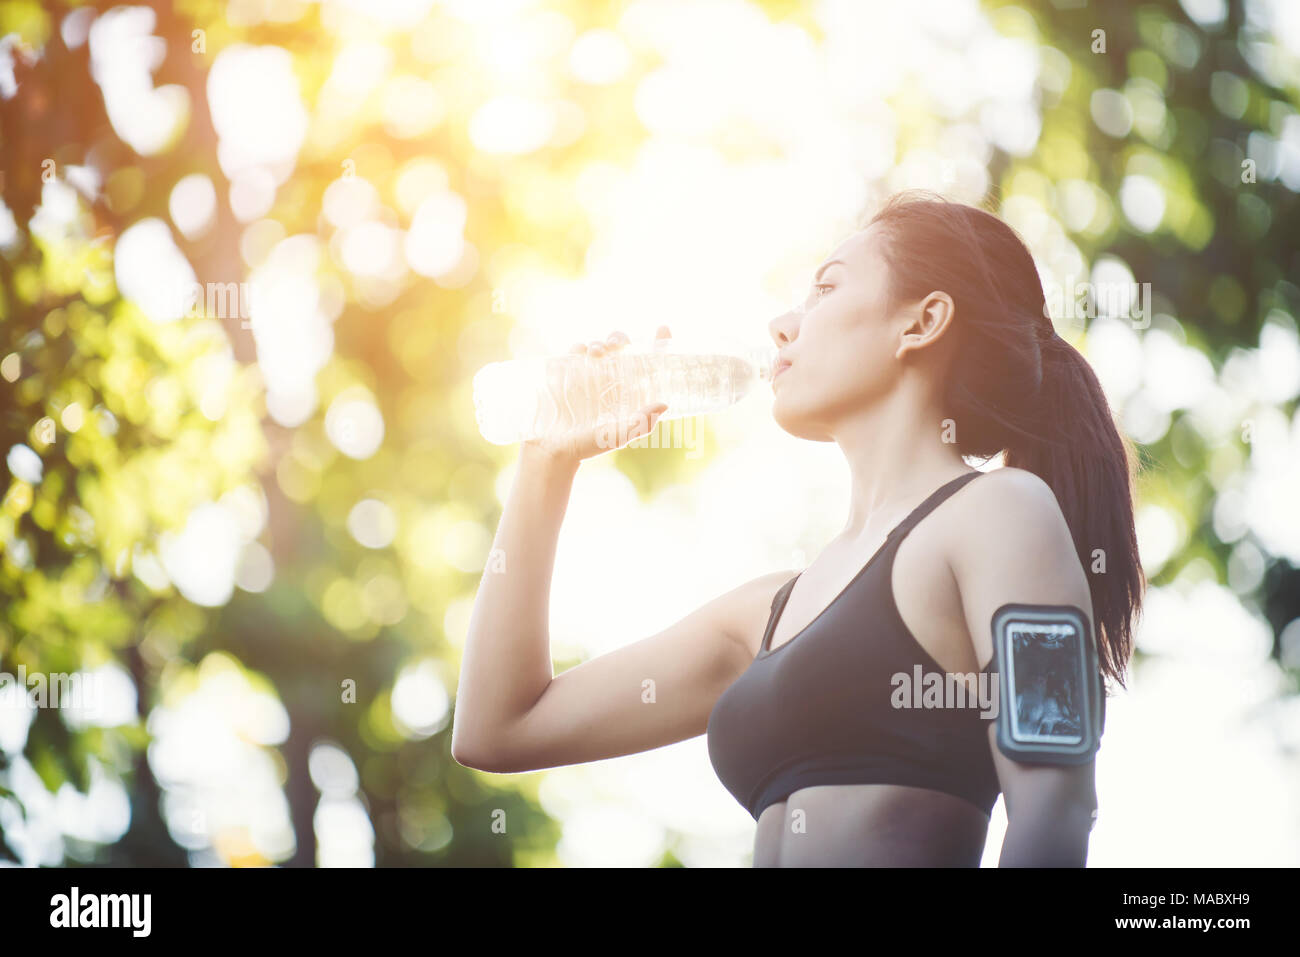 Fitness woman athlete takes a break, Drinking water, Hot day. Country rural road nature background. - Stock Image